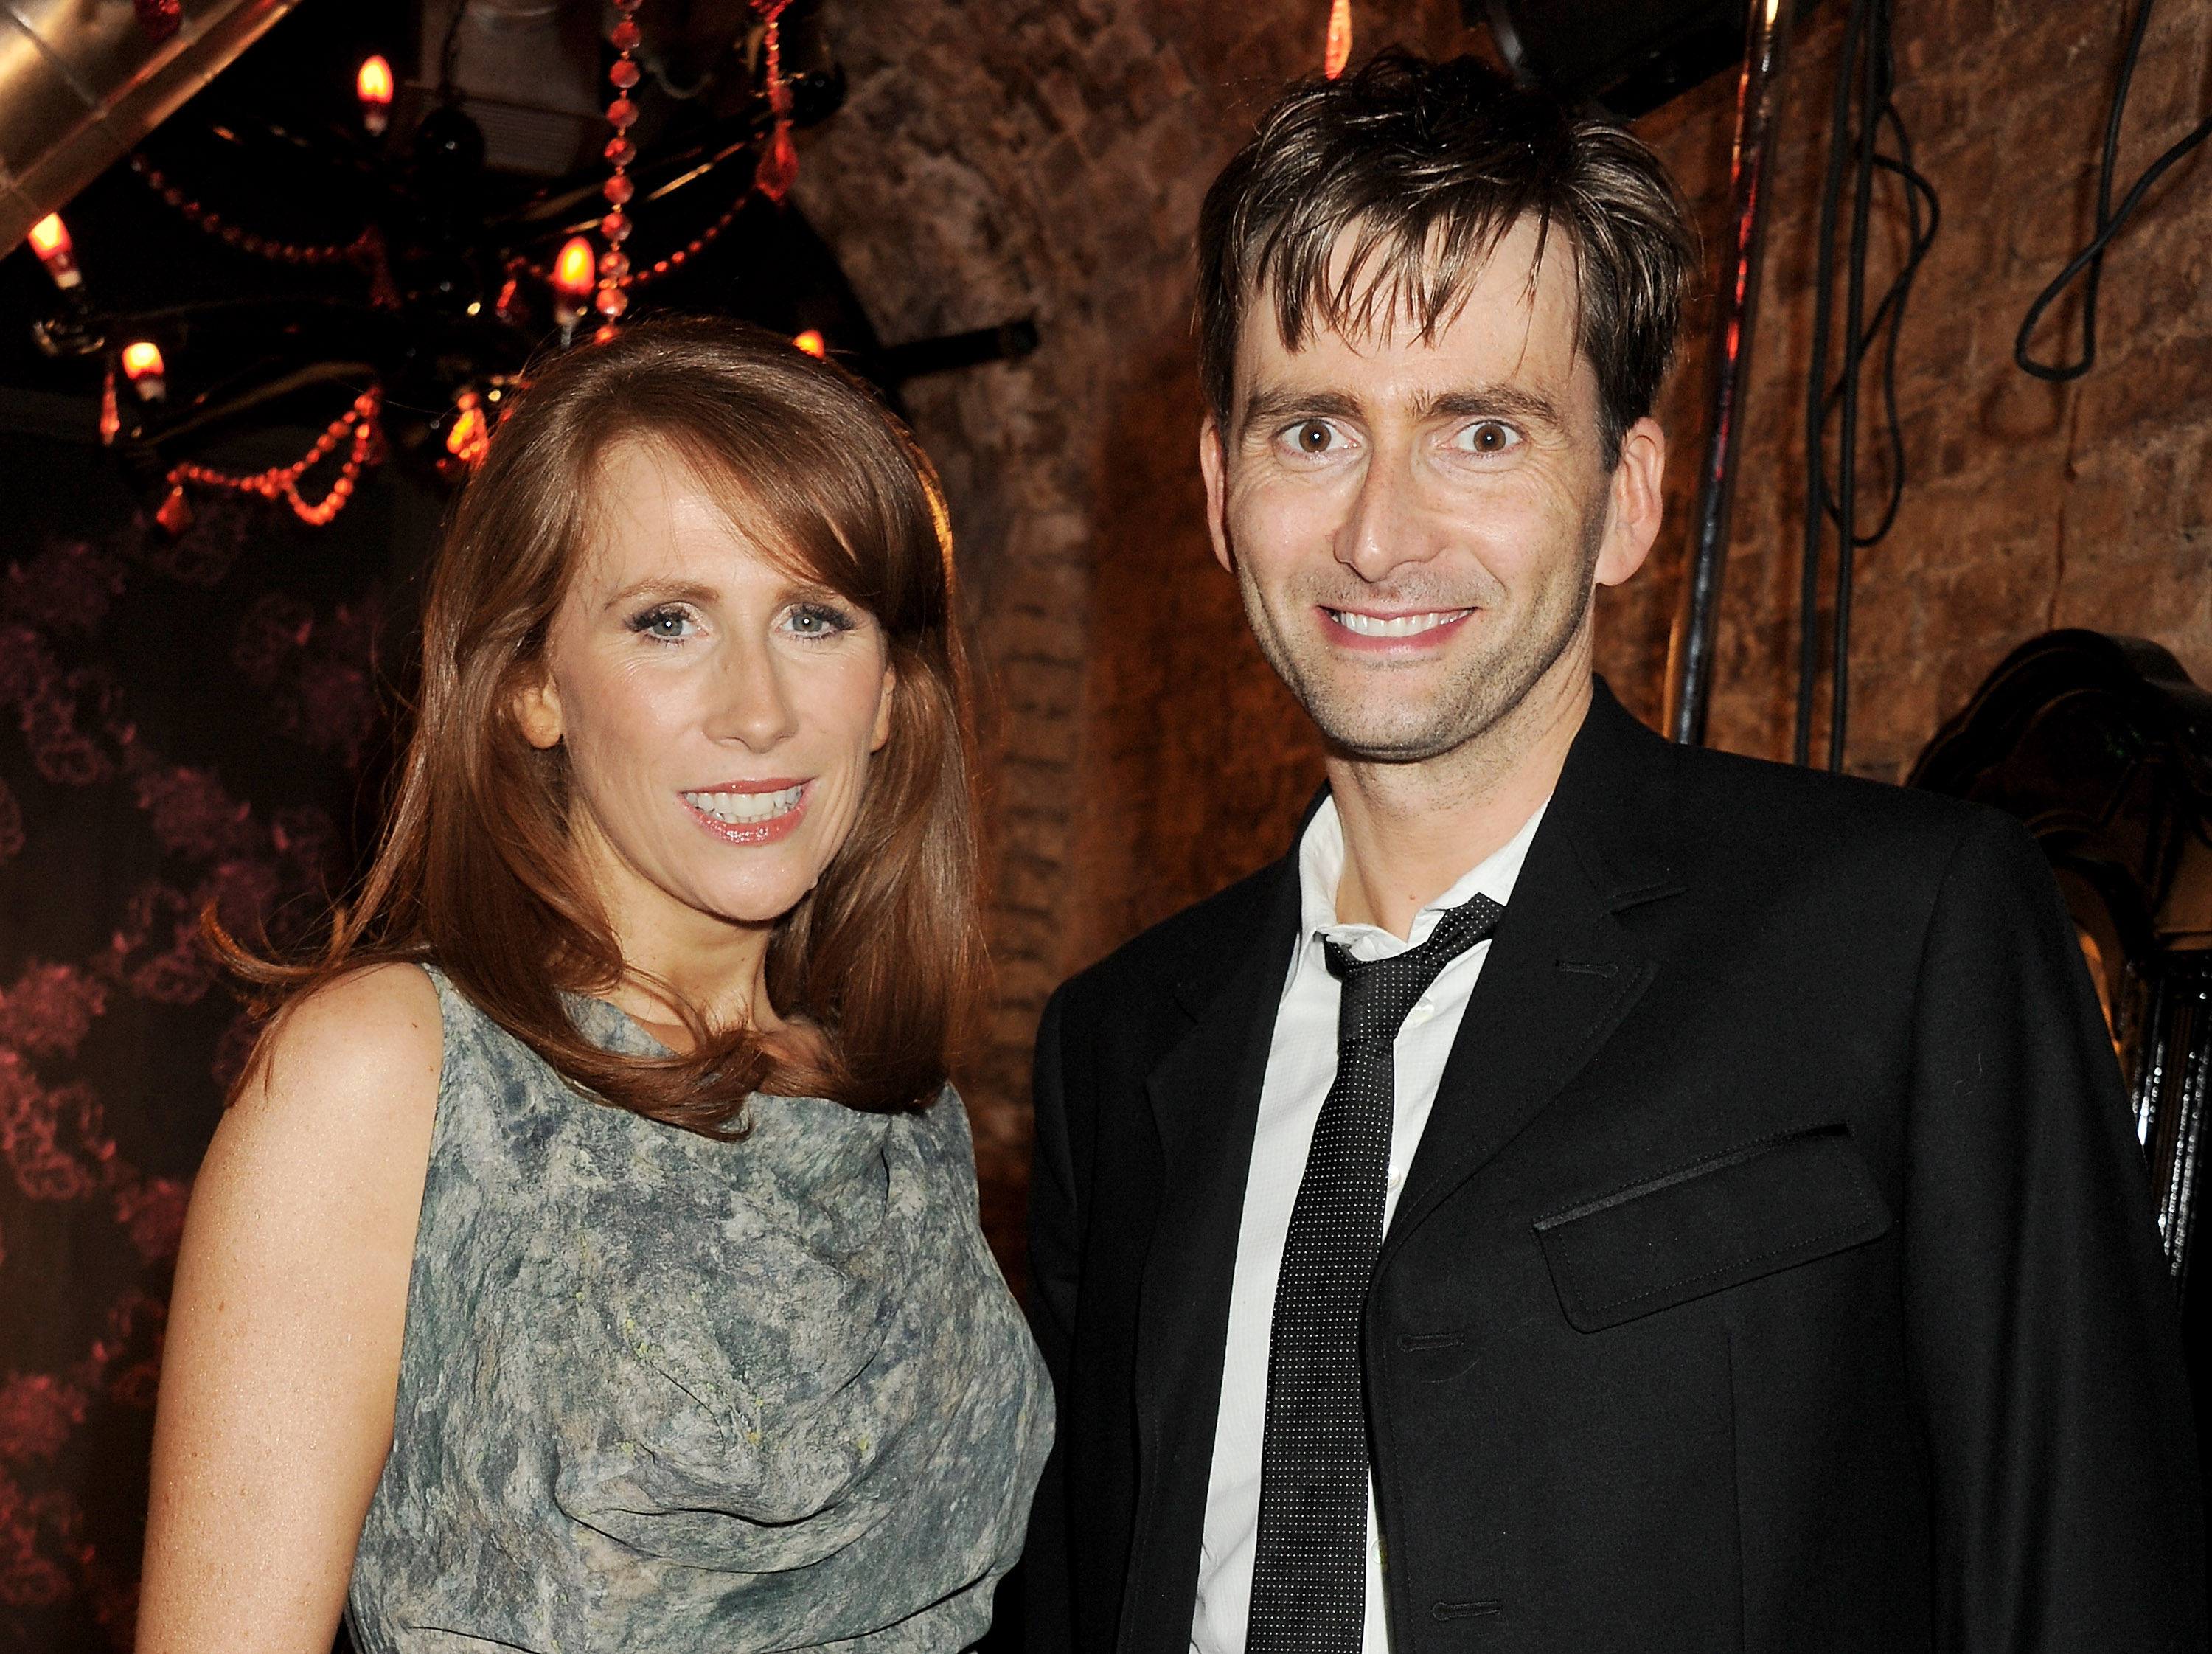 List of The Catherine Tate Show characters